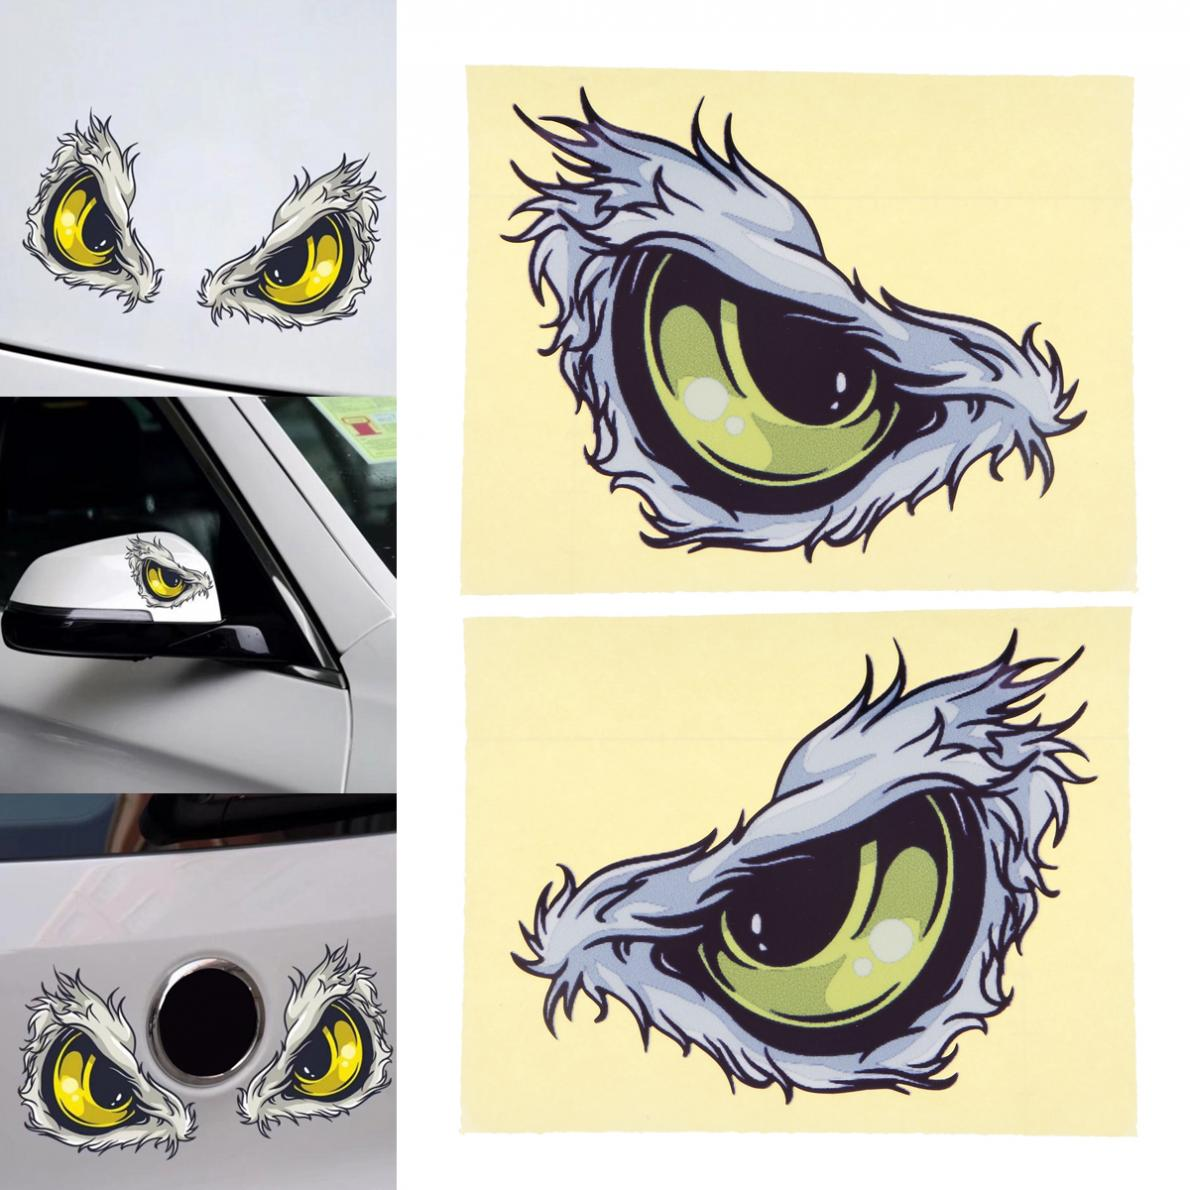 2pcs 3D 10 x 8CM Reflective Material Strong Adhesion Eye Pattern Creative Funny Stereoscopic Car Sticker Accessories ...